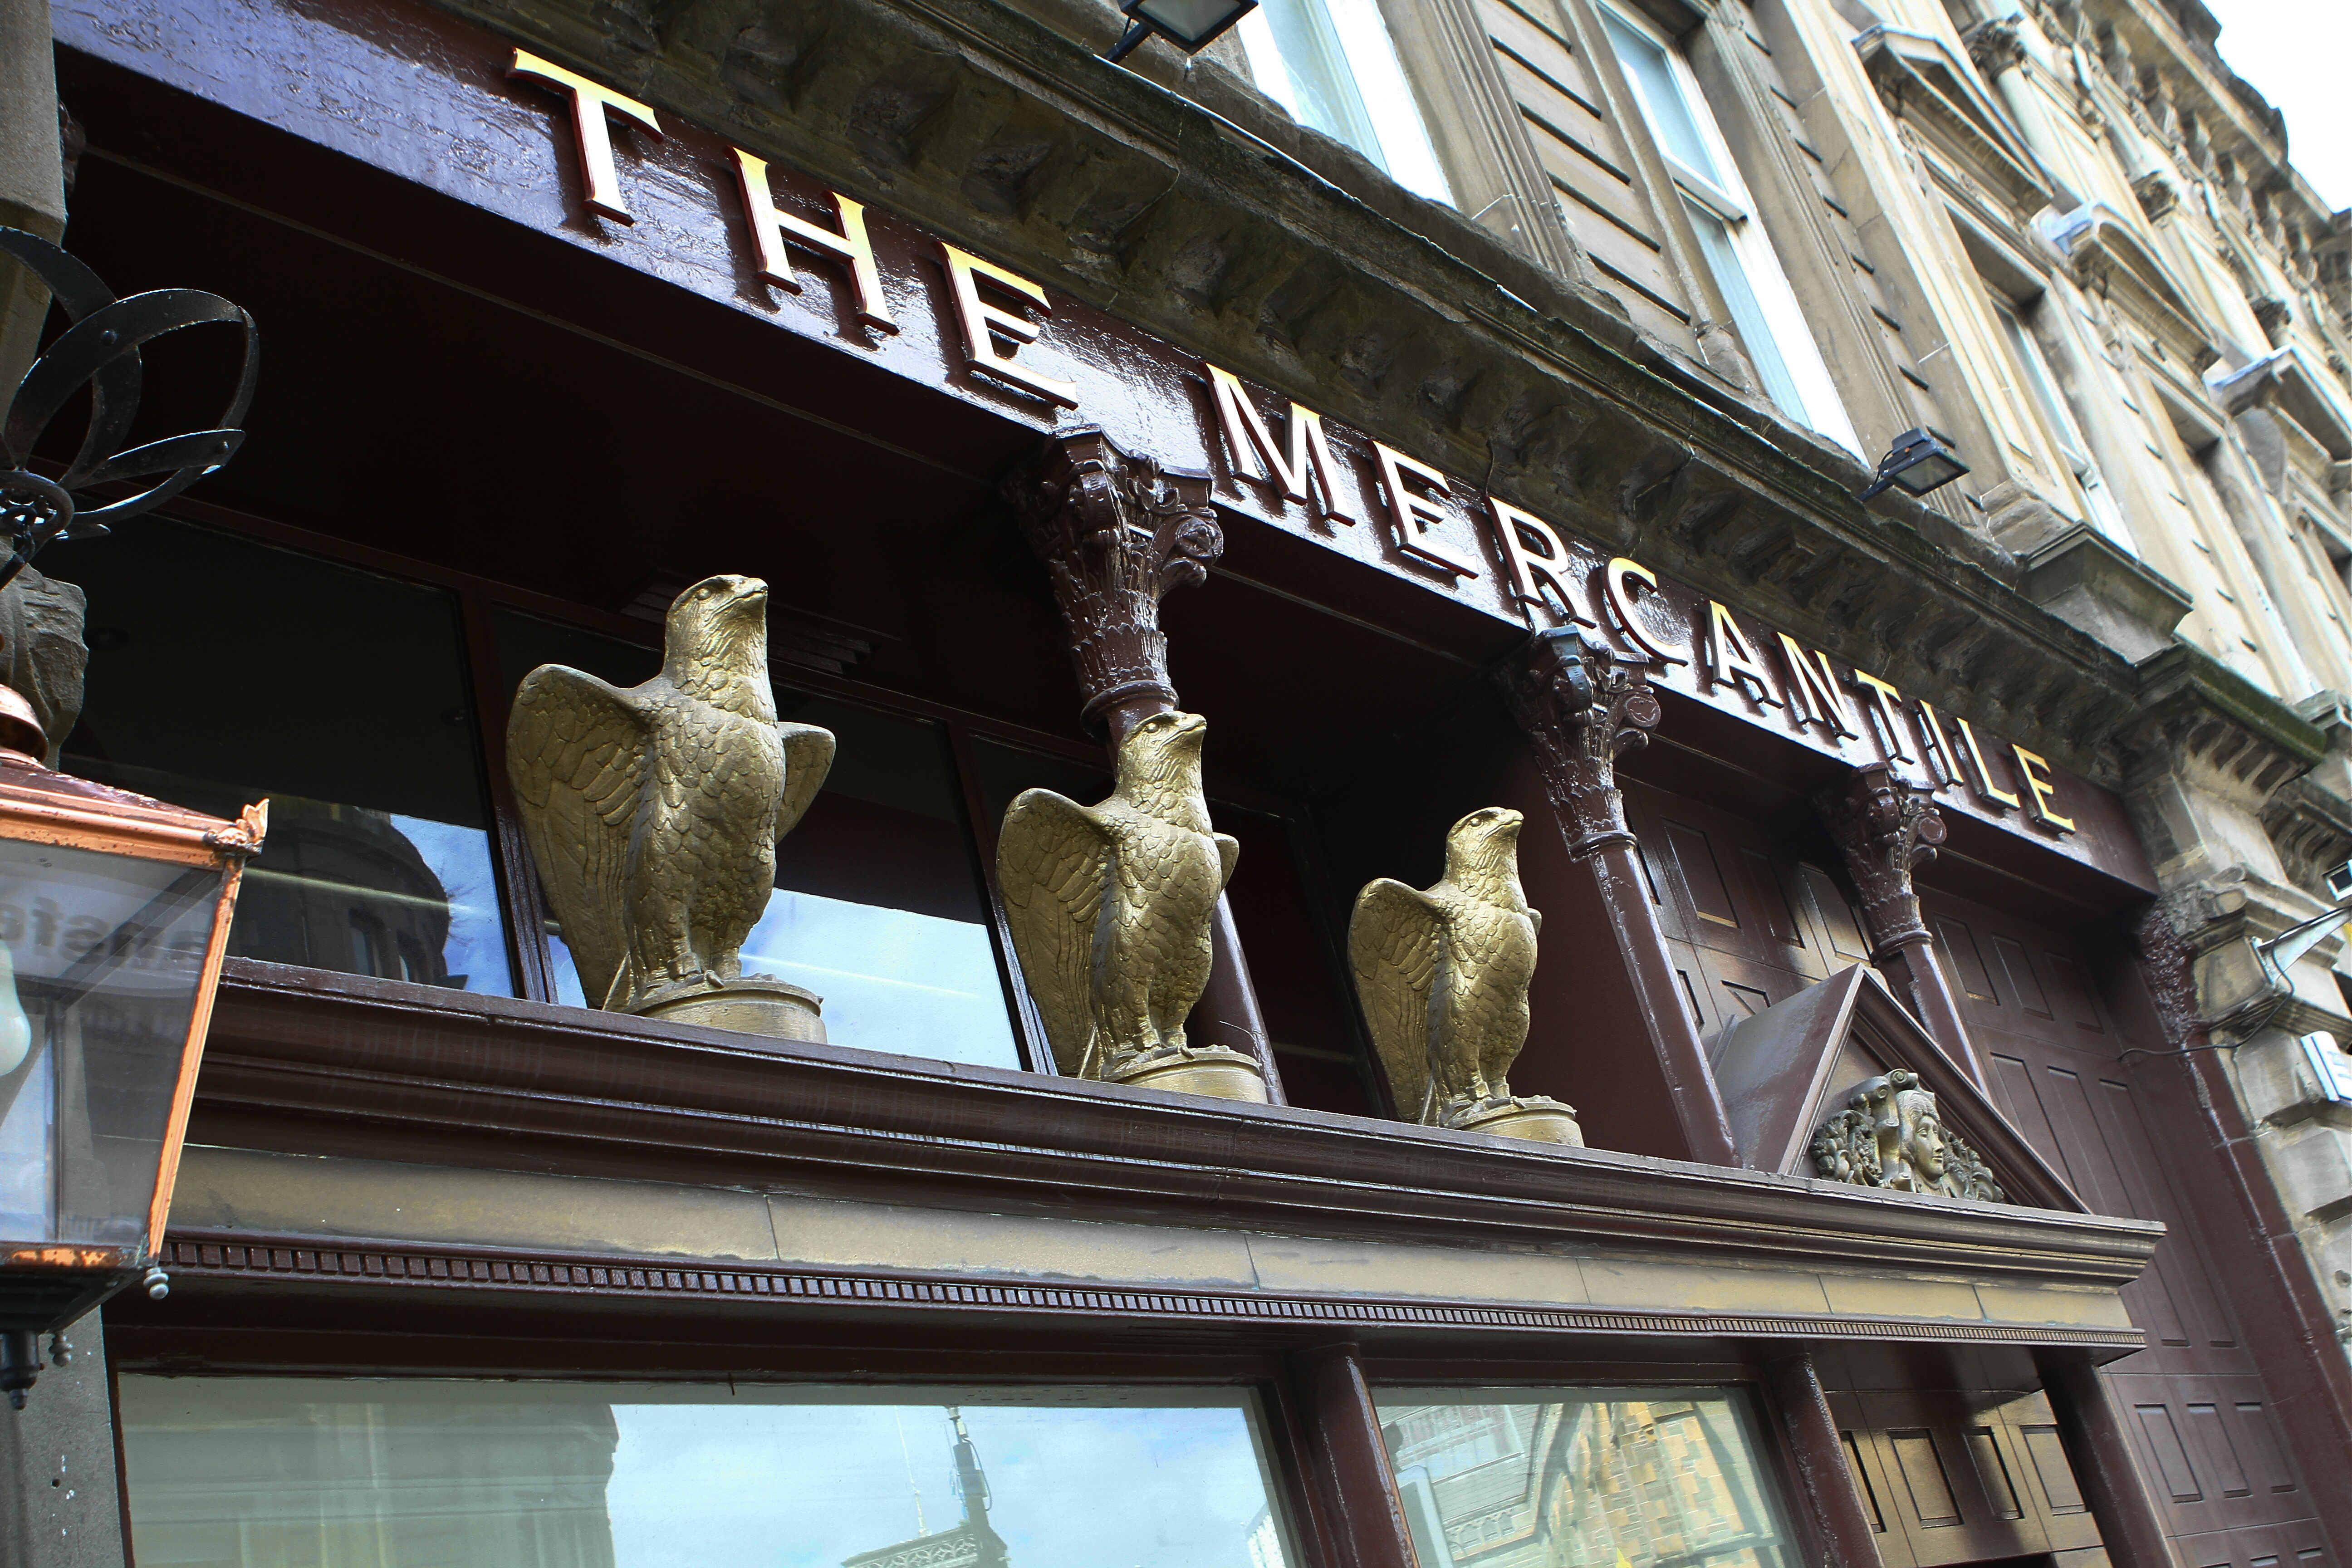 The theft took place at The Mercantile pub on Commercial Street.